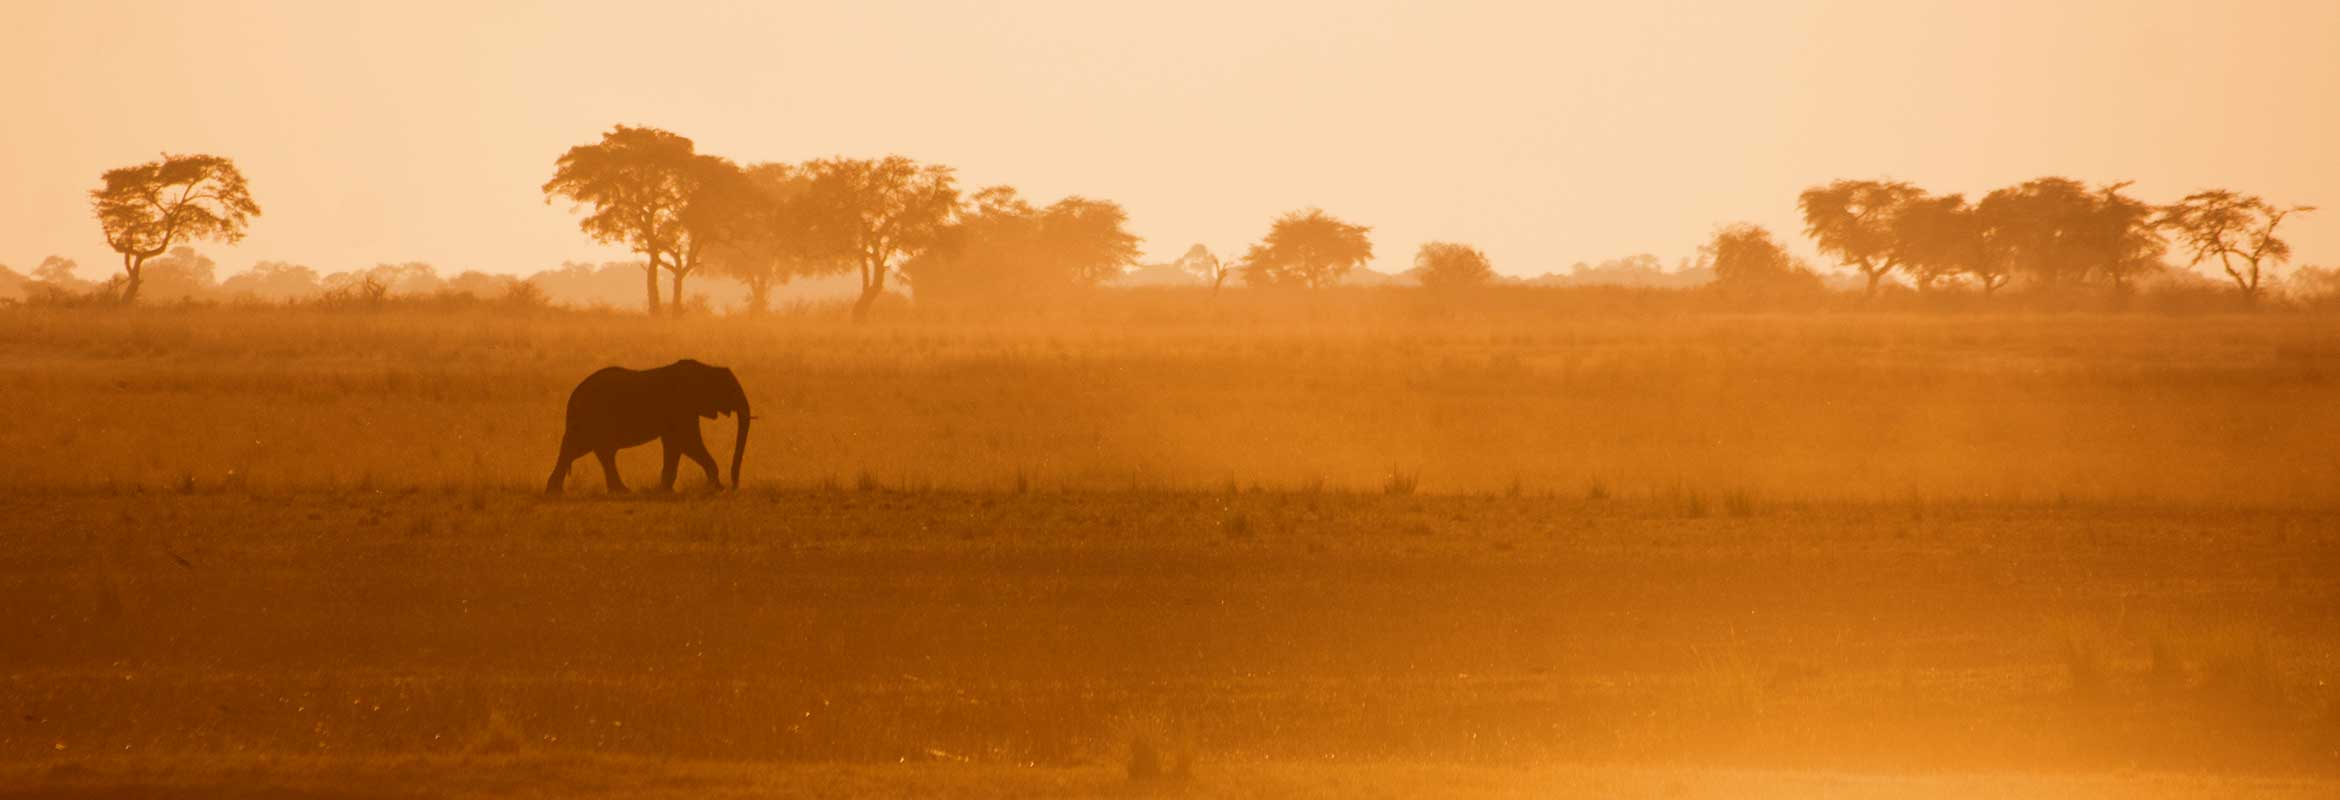 Where To Go On Safari | Our Guide To The Best Safari